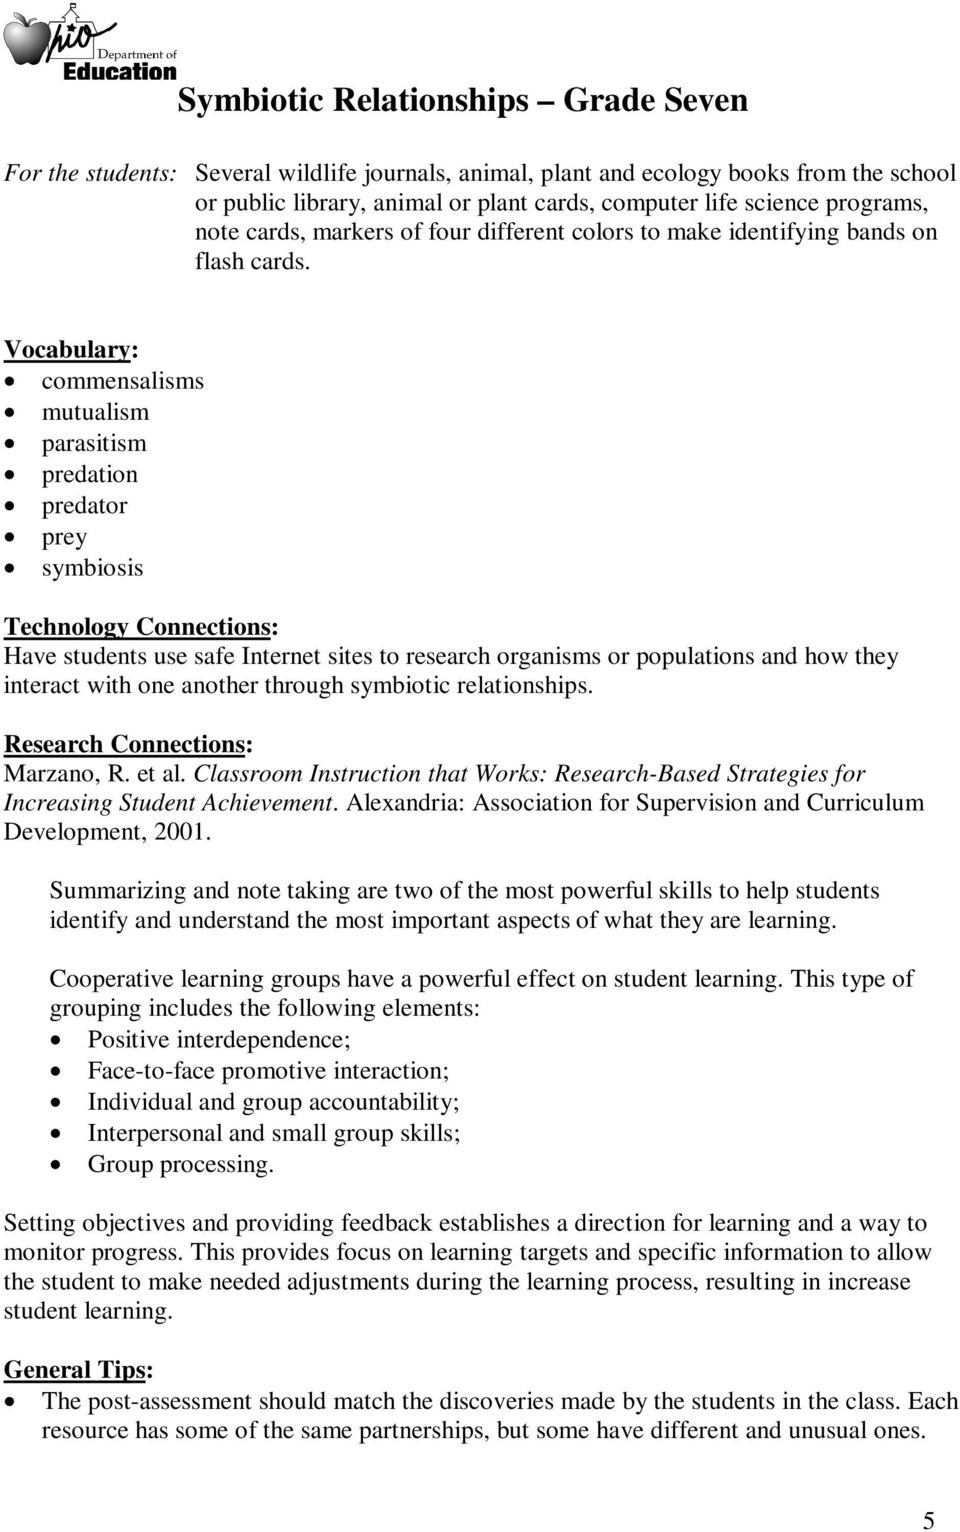 Worksheets Symbiosis Worksheet symbiotic relationships grade seven pdf vocabulary commensalisms mutualism parasitism predation predator prey symbiosis technology connections have students use safe